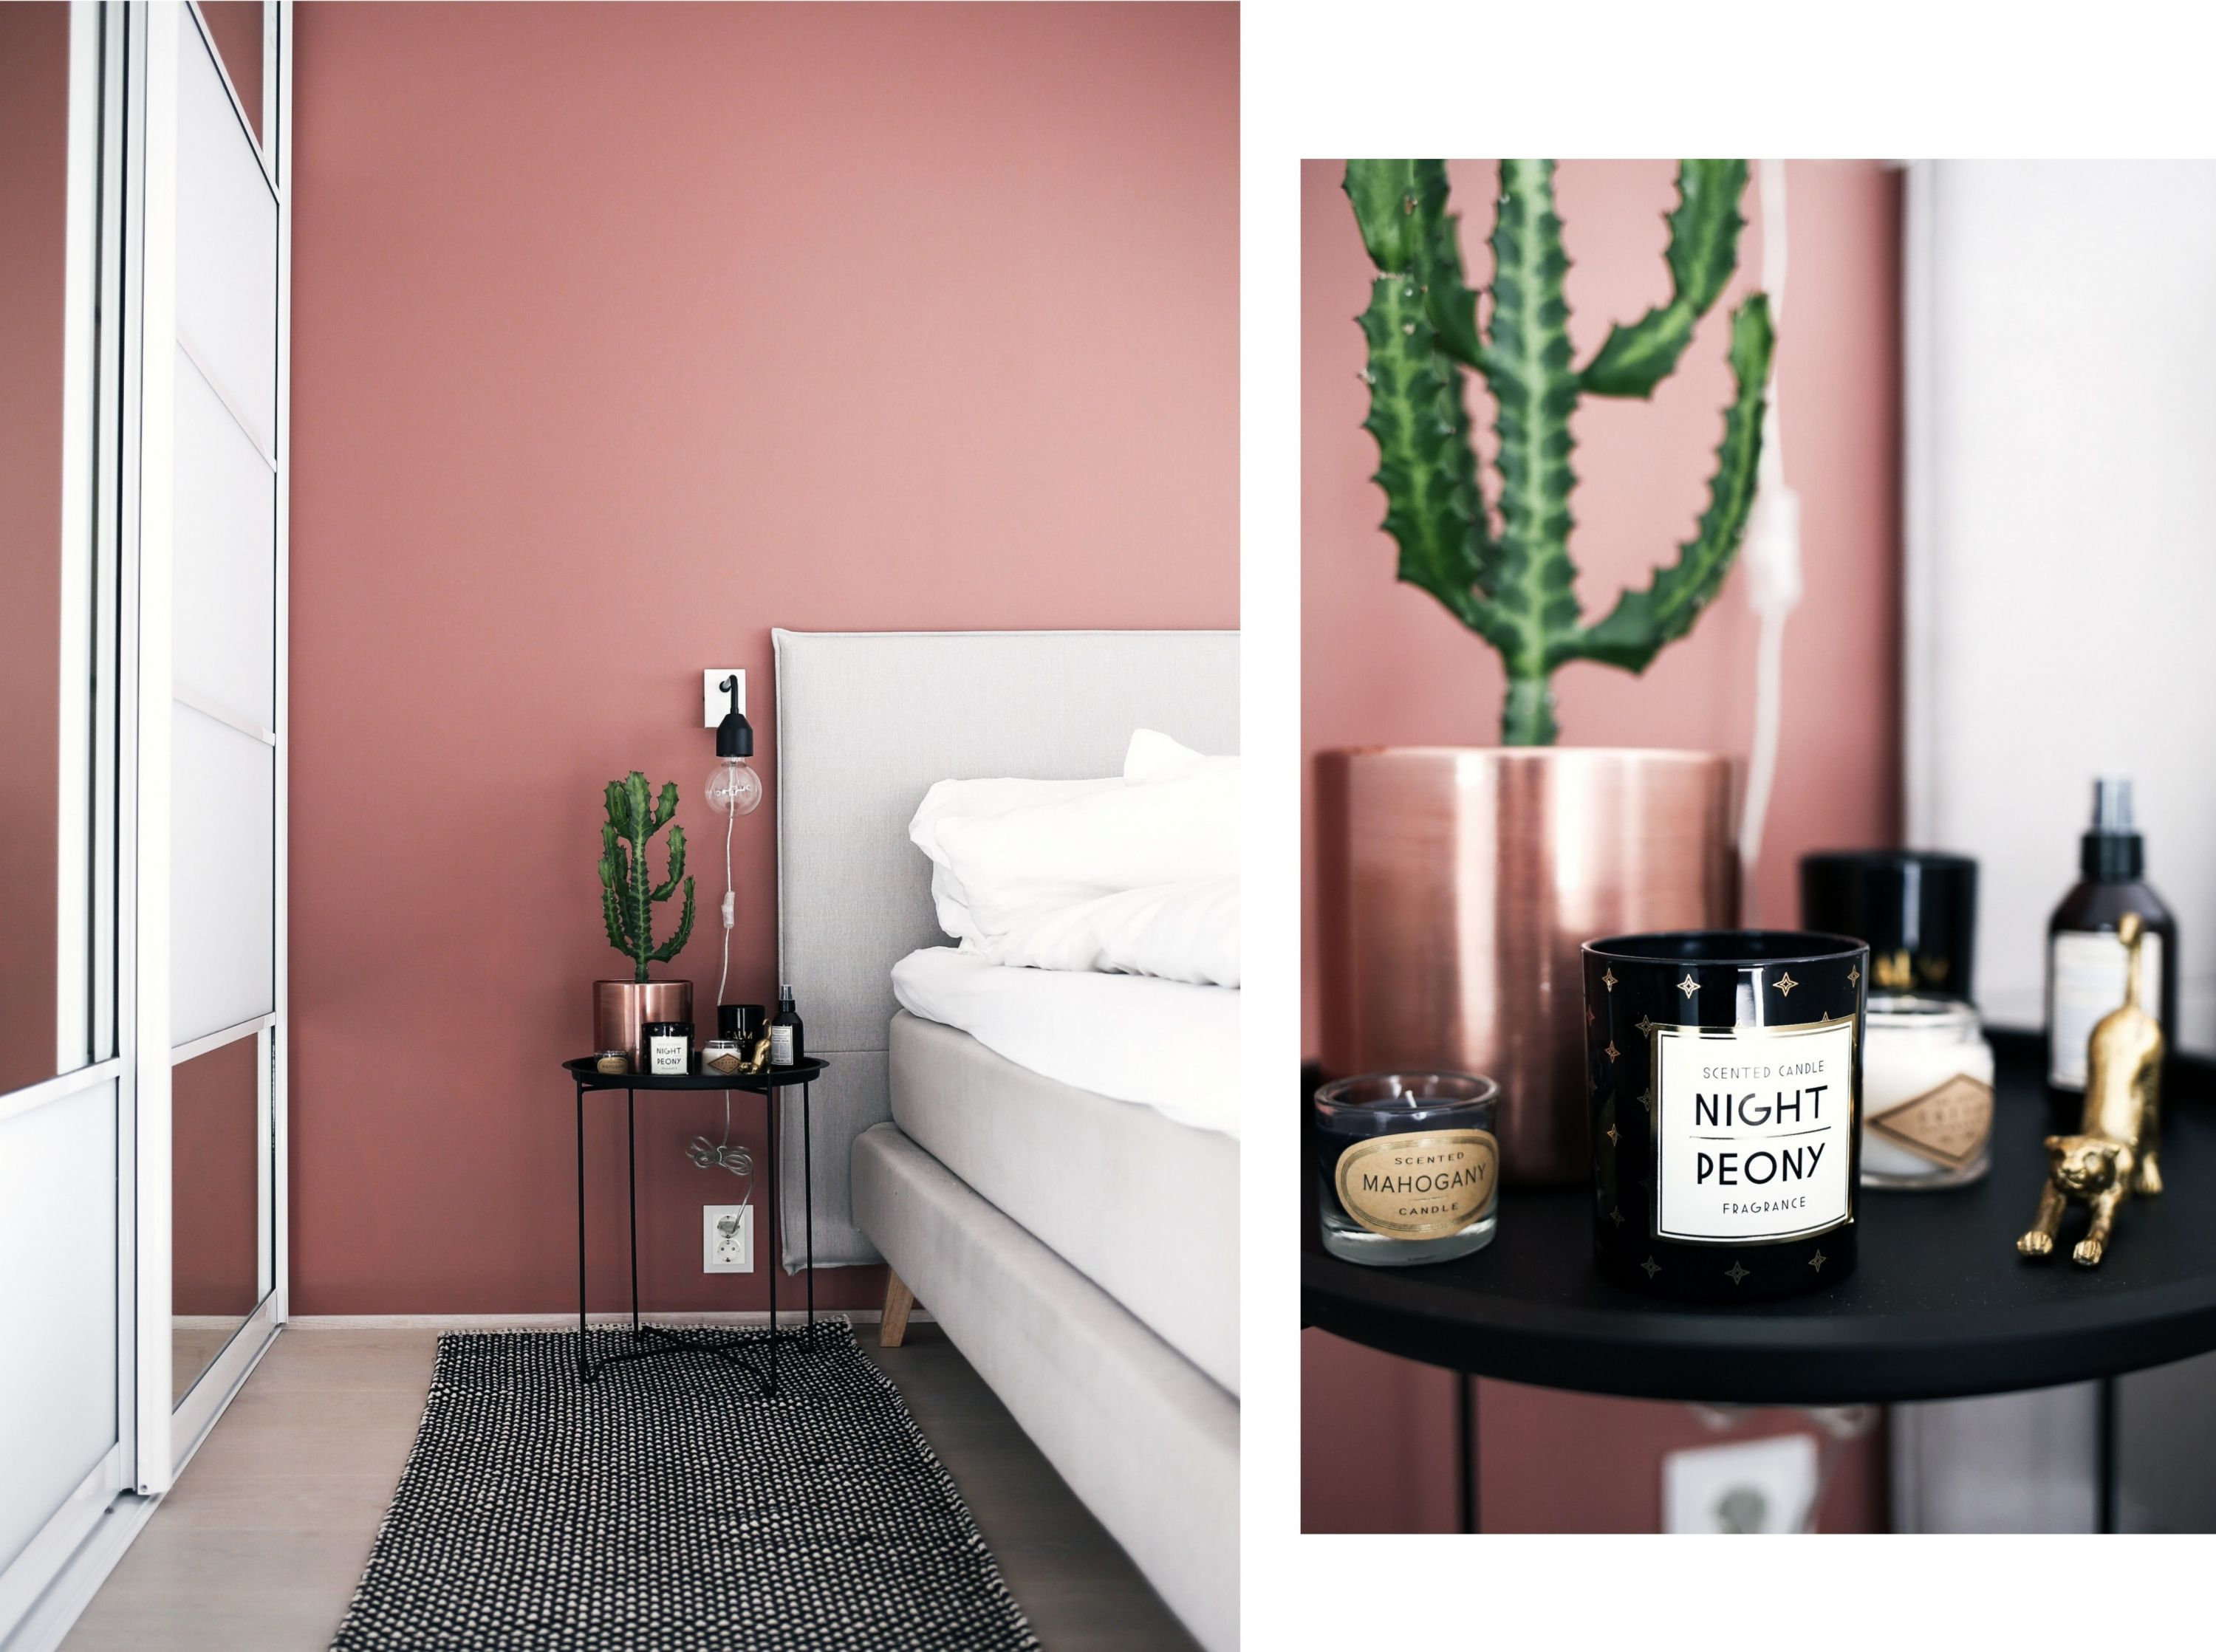 Forandring fryder (Eirín Kristiansen) | Bedrooms, Interiors and ...